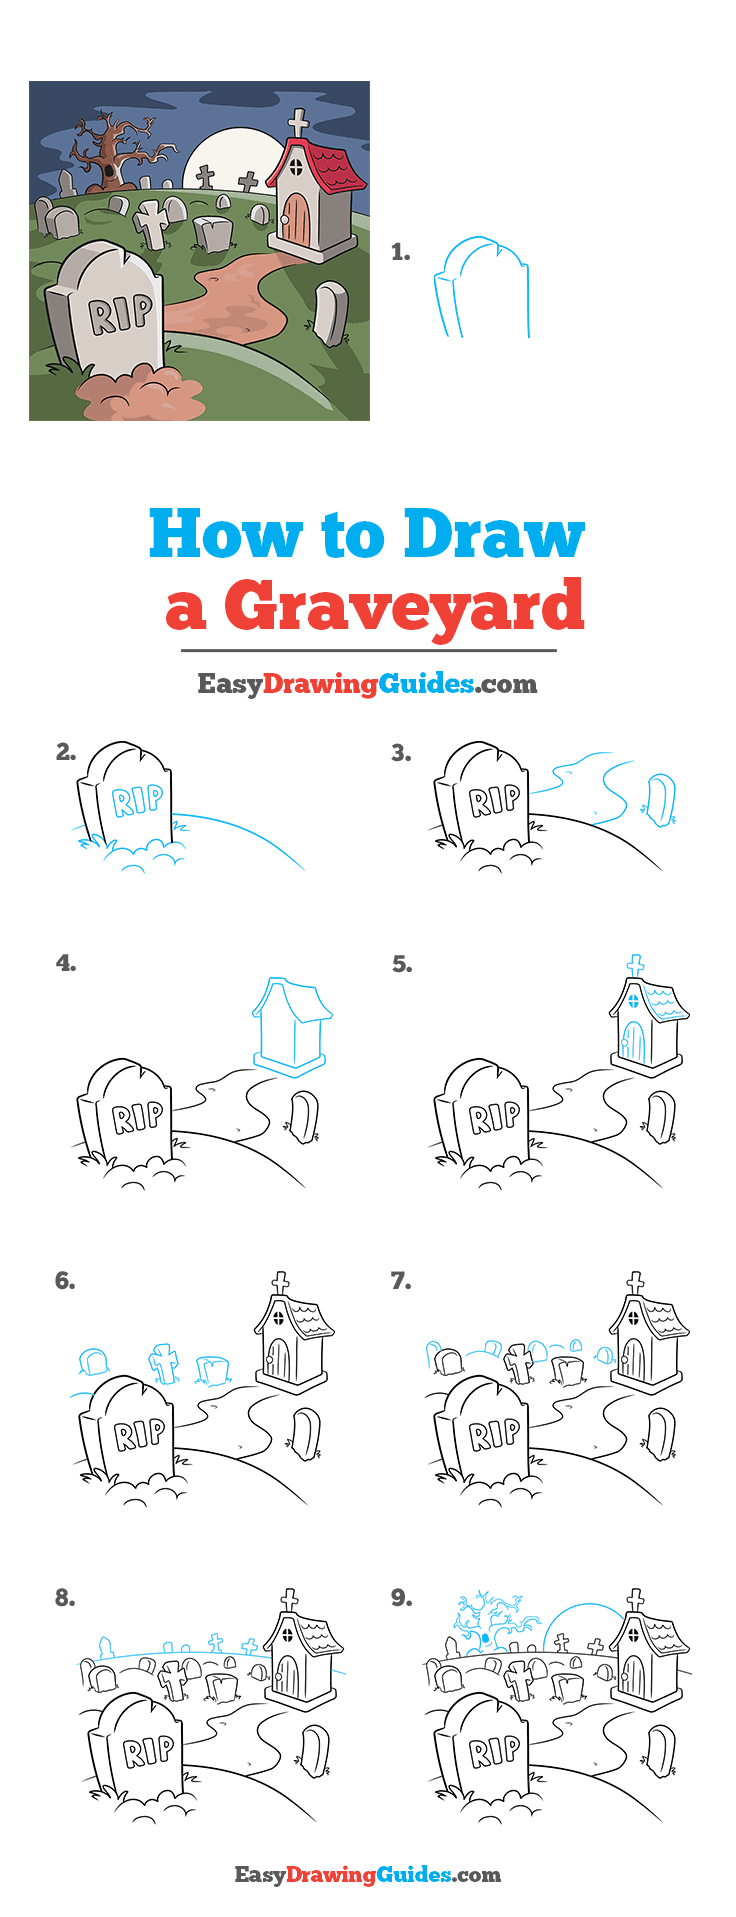 How to Draw Graveyard